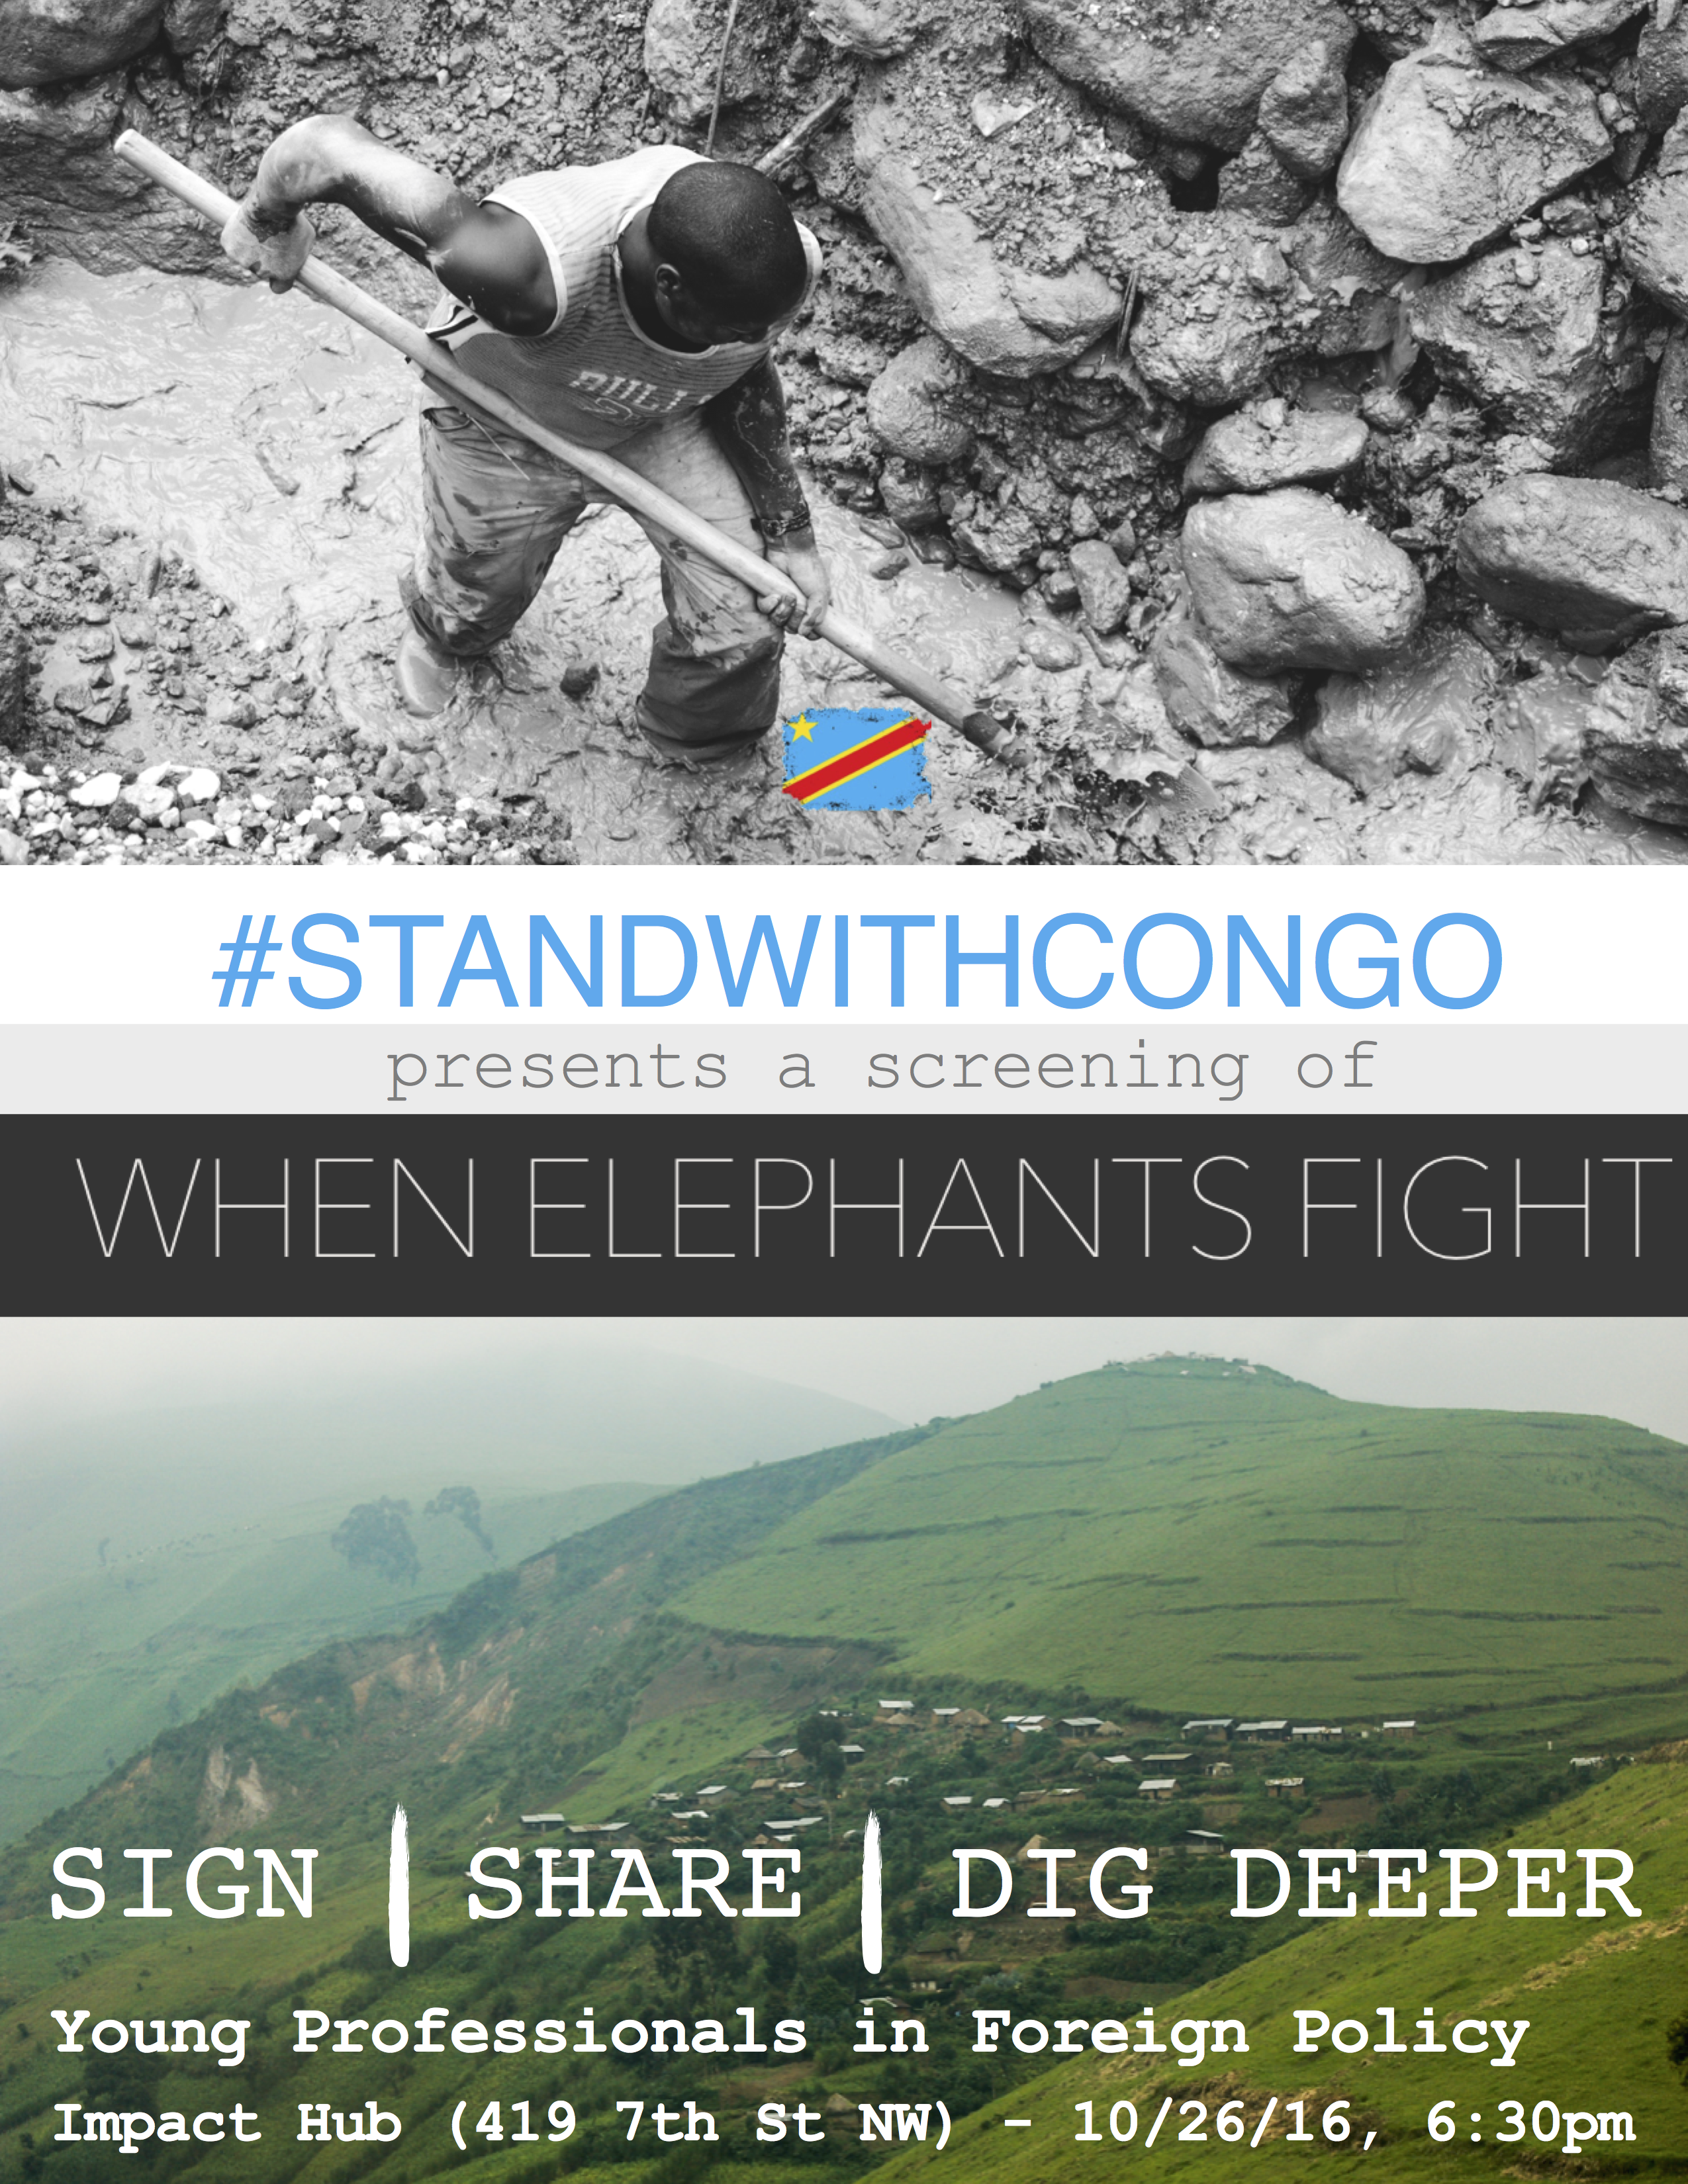 _StandWithCongo_Screening4Action_-_YPFP.png